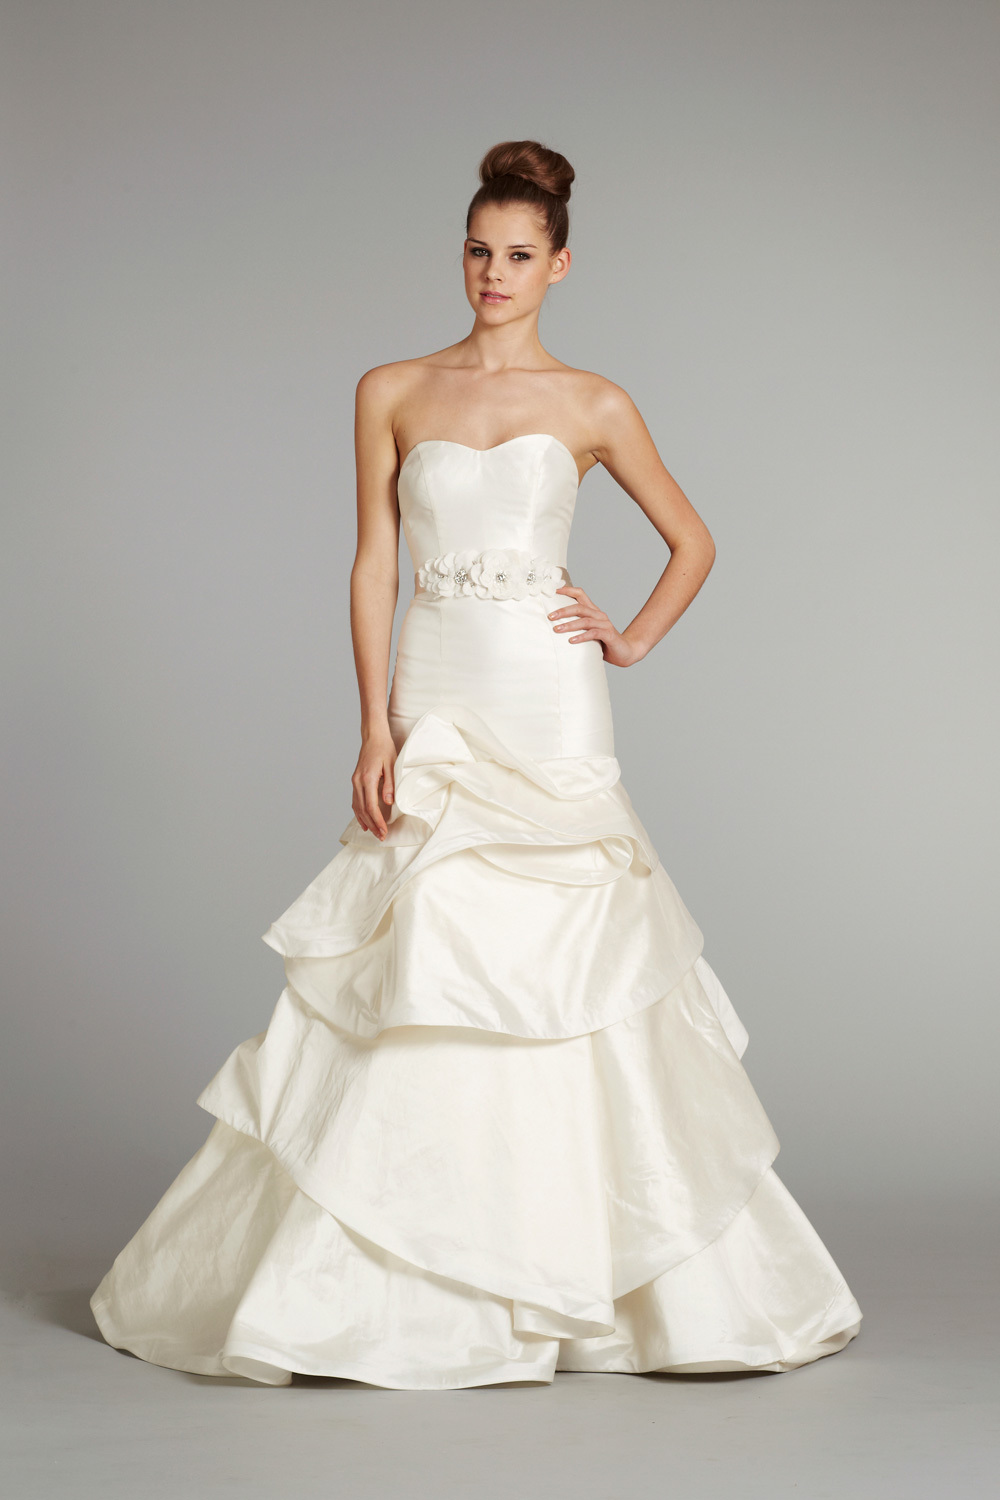 Bridal-gown-wedding-dress-jlm-hayley-paige-fall-2012-pearl-front.full